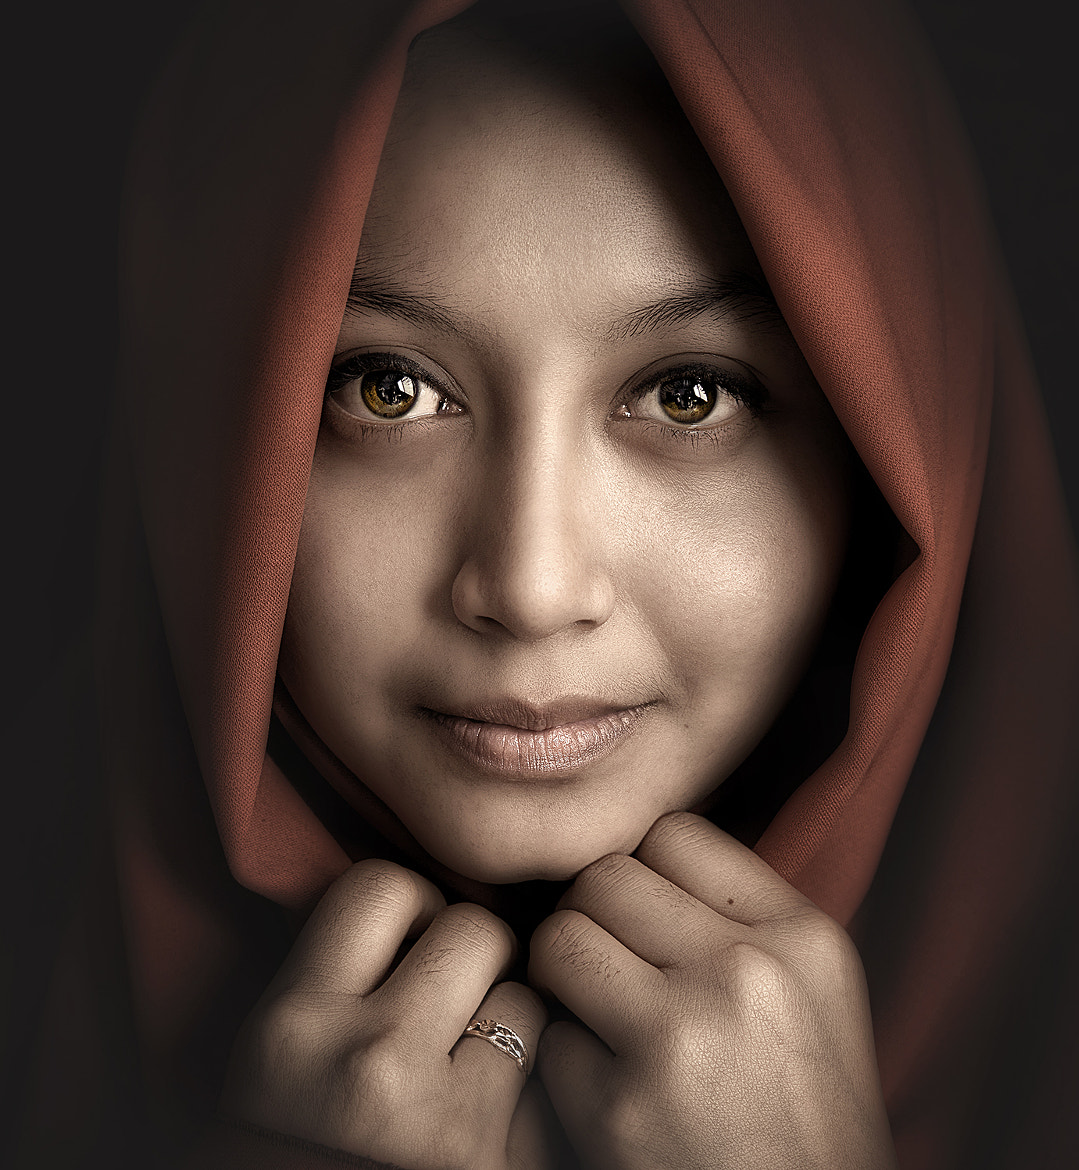 Photograph MY EYES.... by abe less on 500px